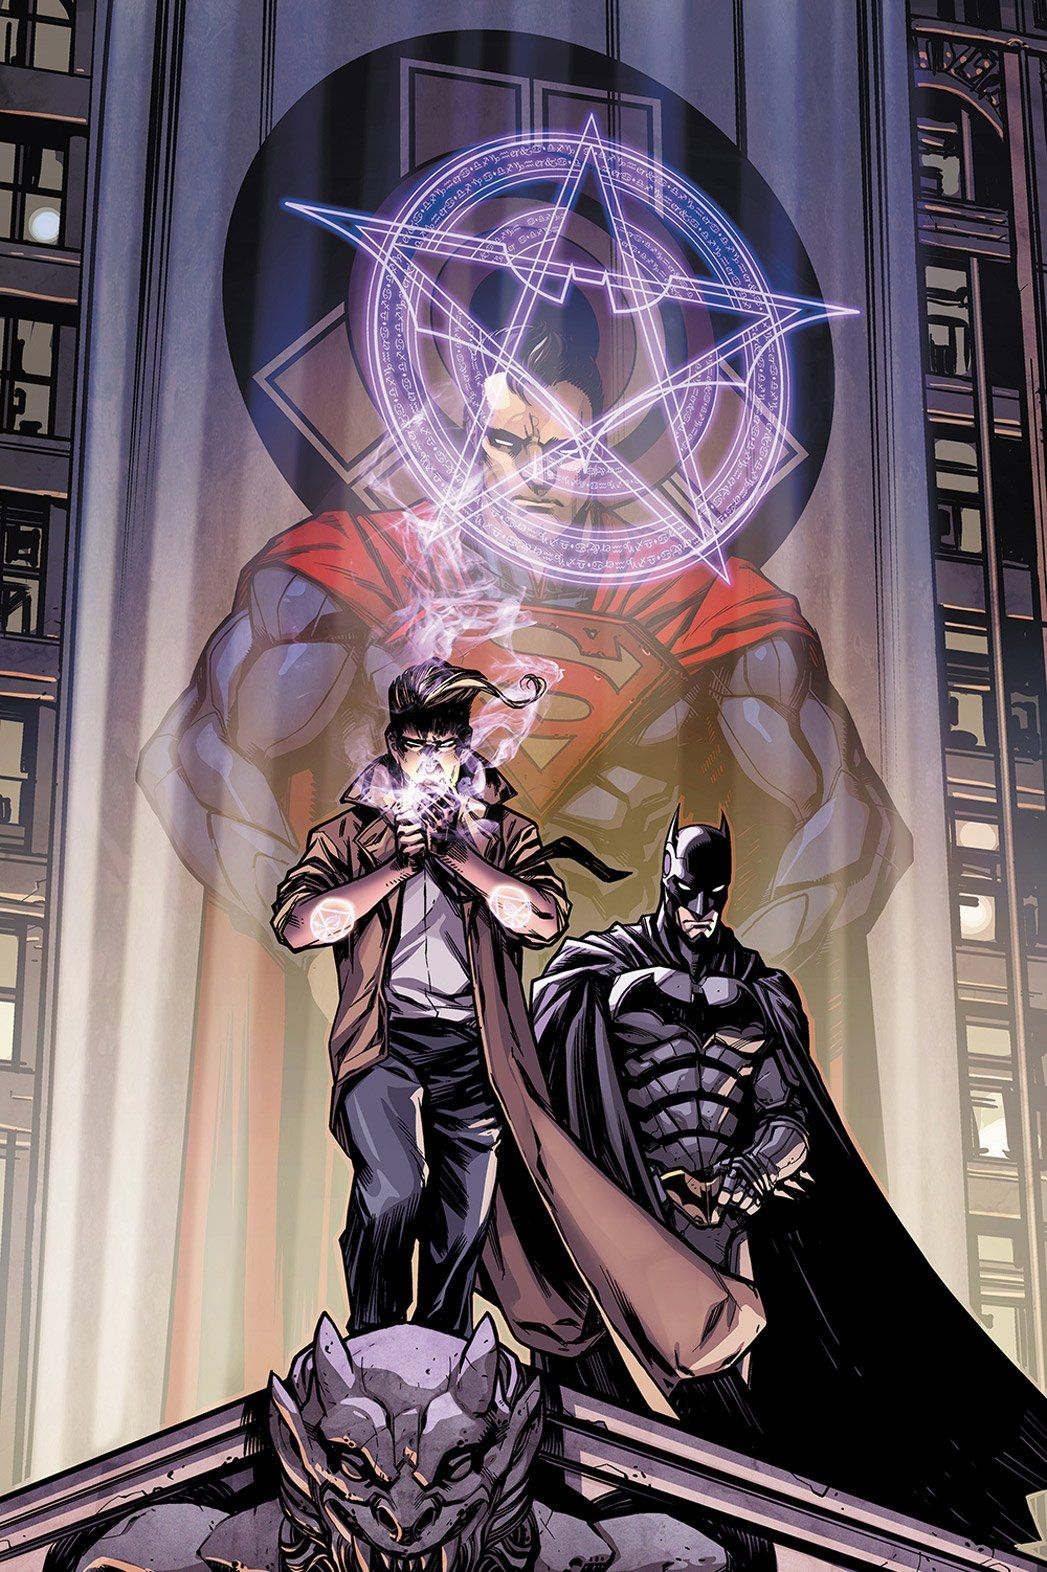 Dc S Injustice Gods Among Us Comic Gets Renewed For Third Year Dc Comics Art Midtown Comics Batman Comics